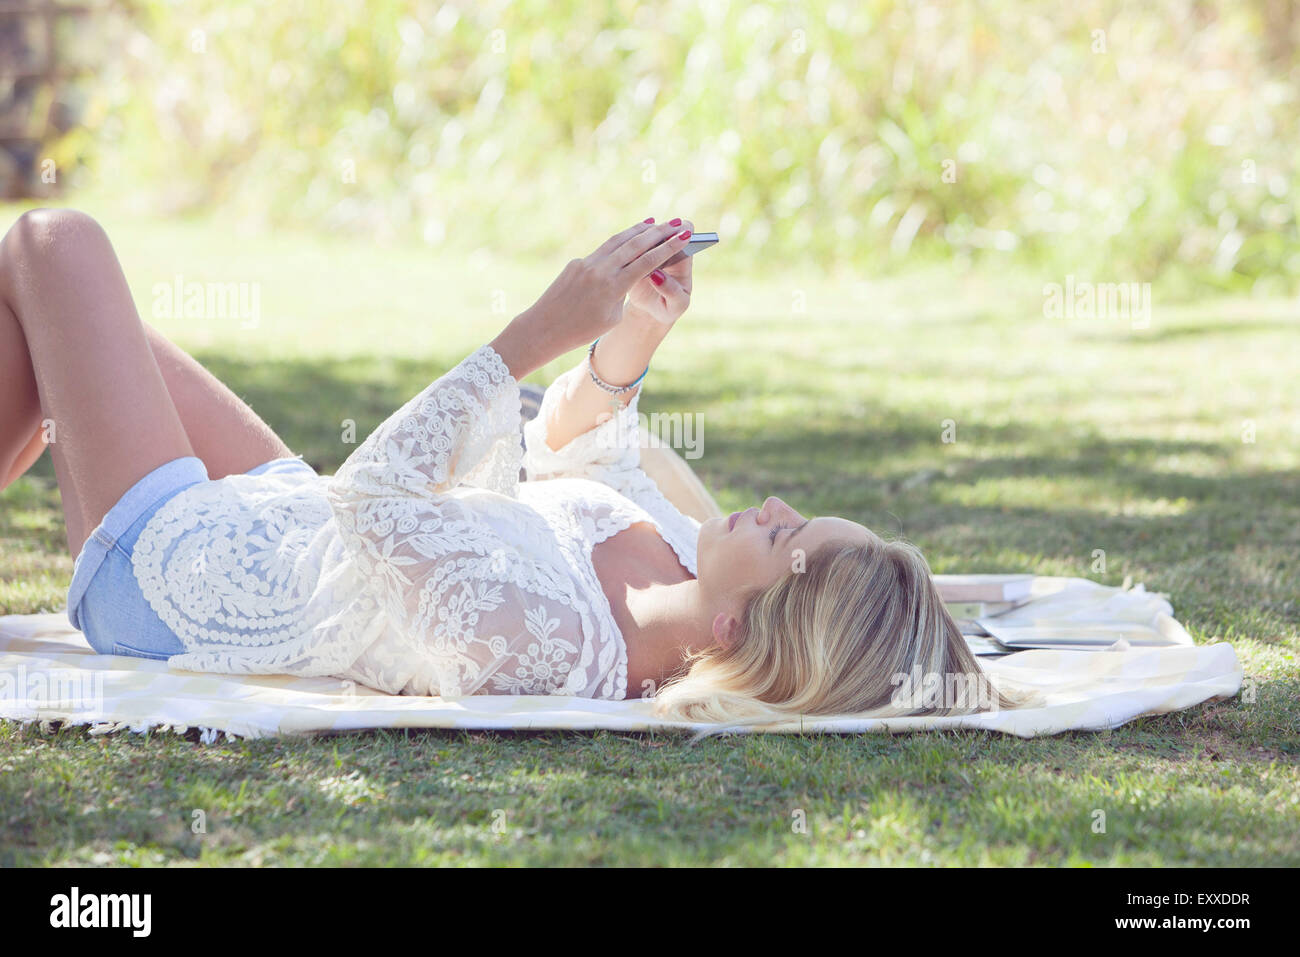 Woman streaming online video content on smartphone outdoors - Stock Image